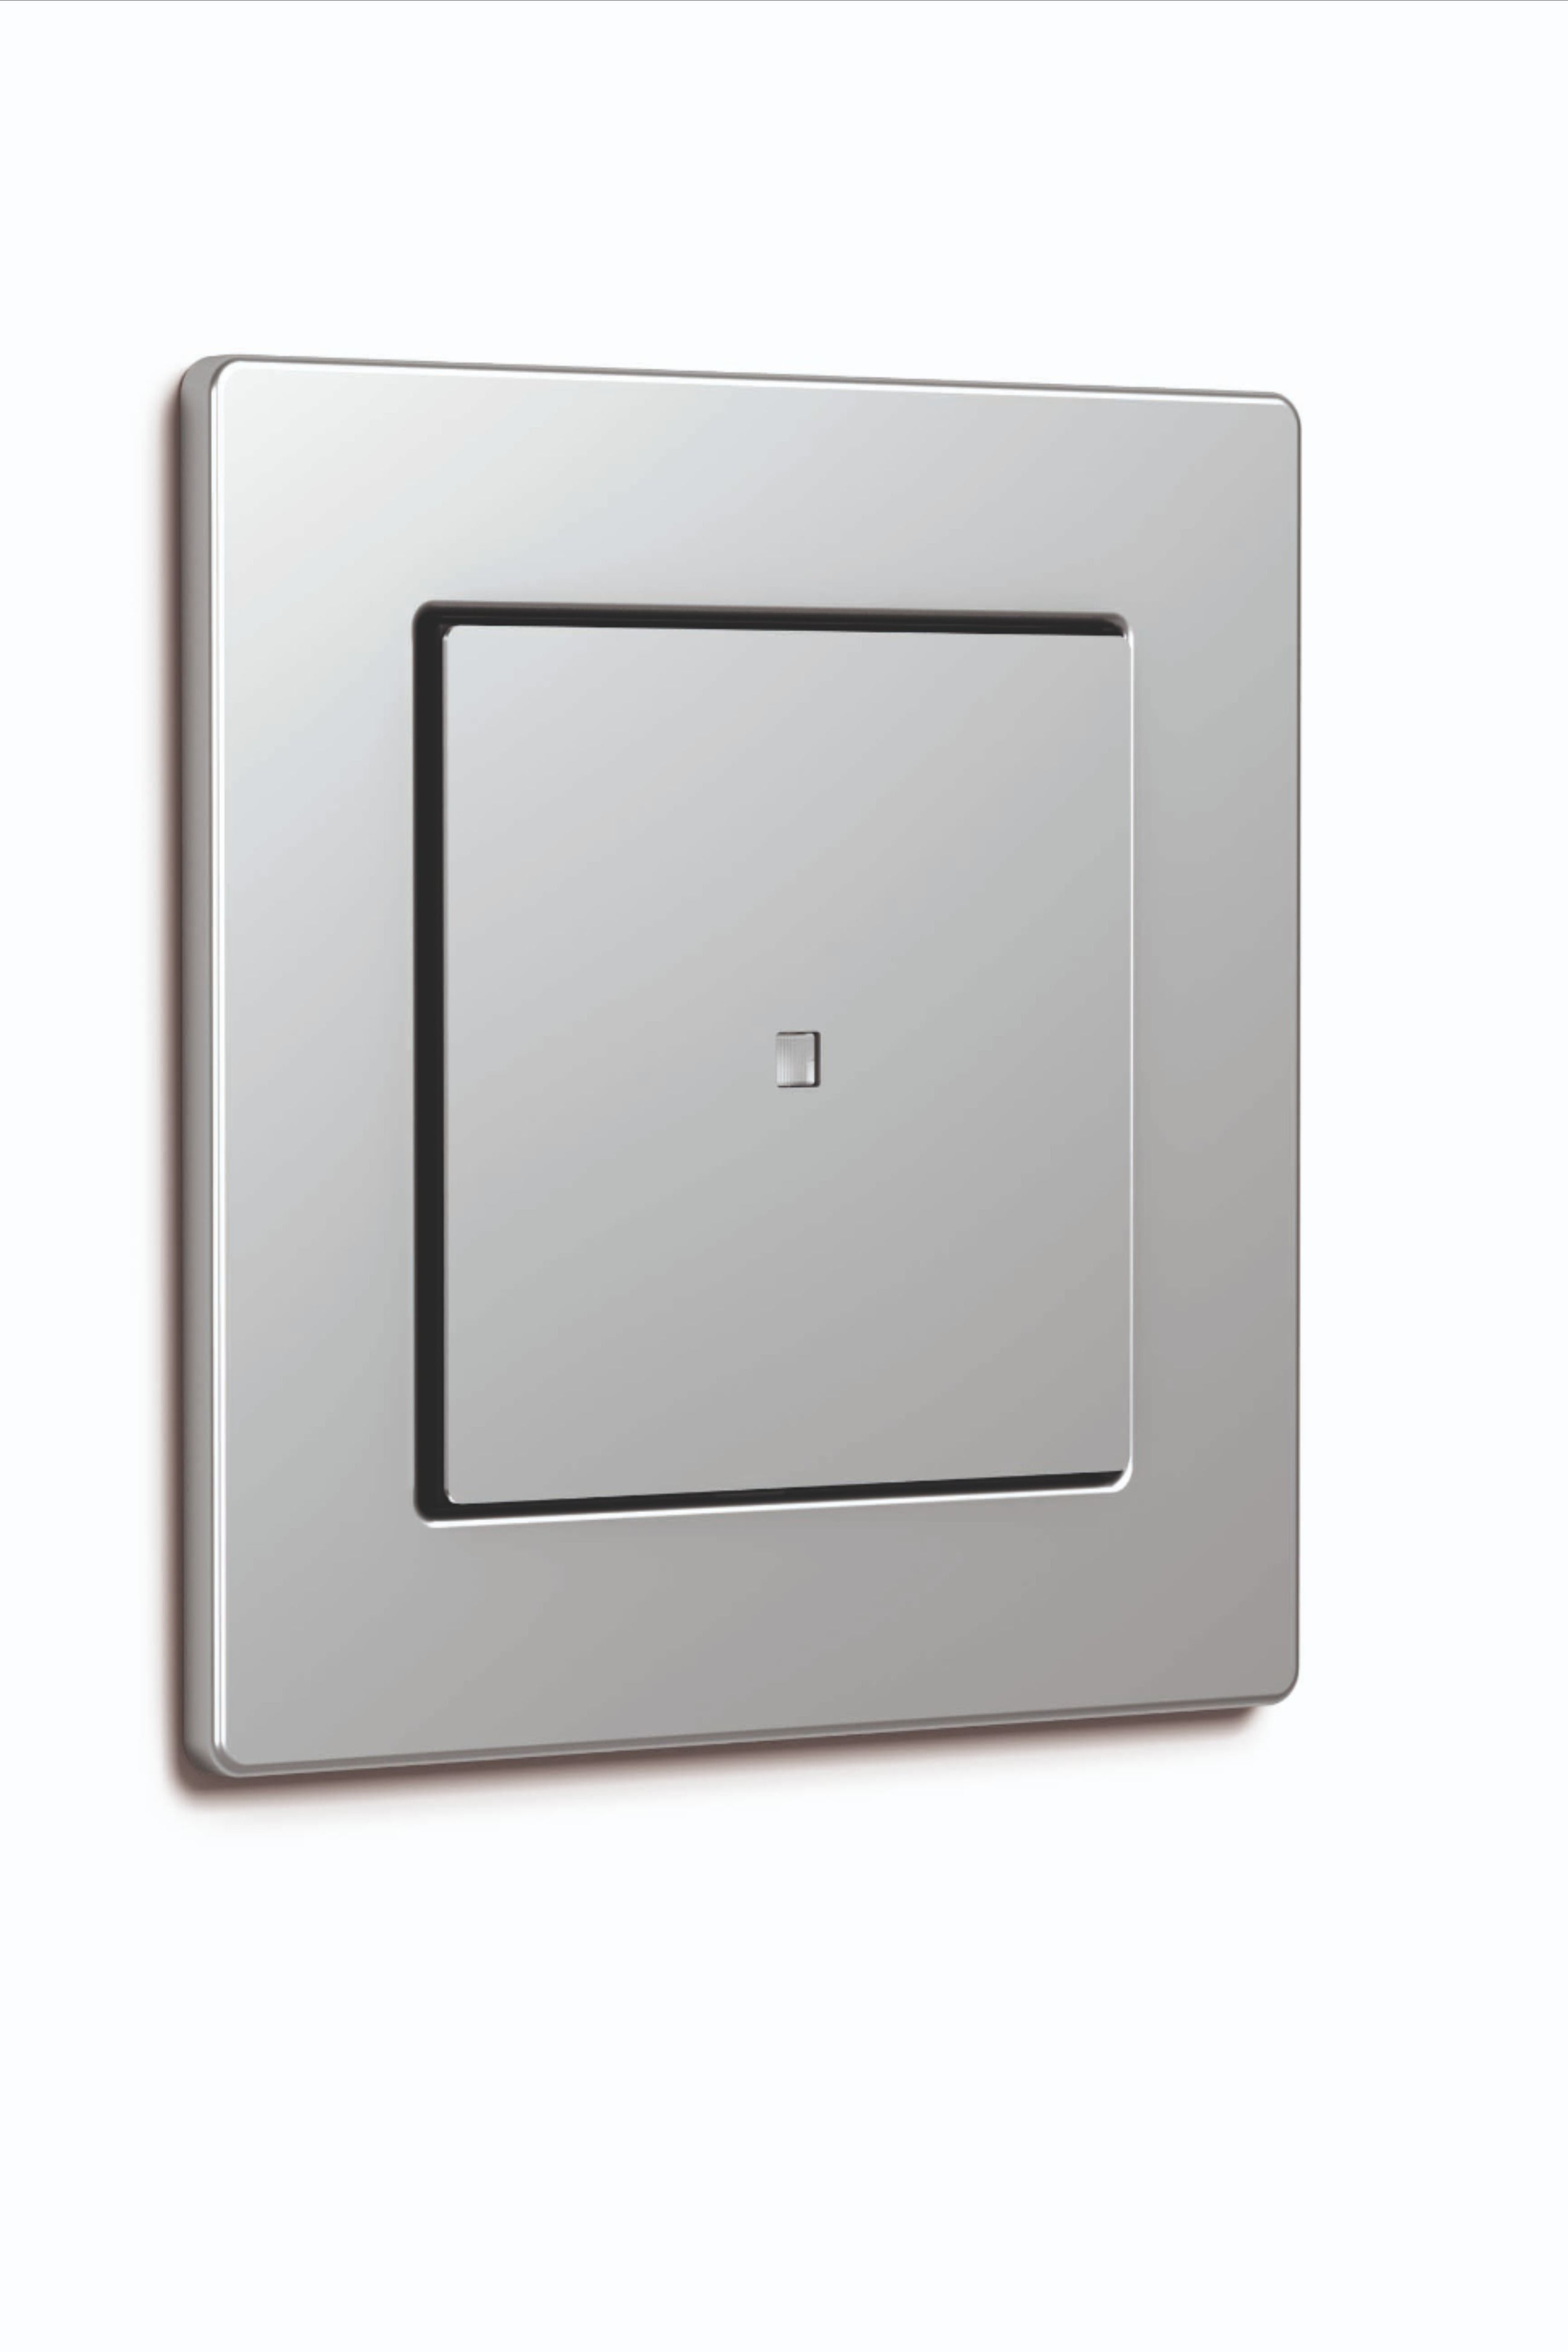 Gira Knx Button Classic Control Of Smart Technology In 2020 Smart Home Night Light Solutions